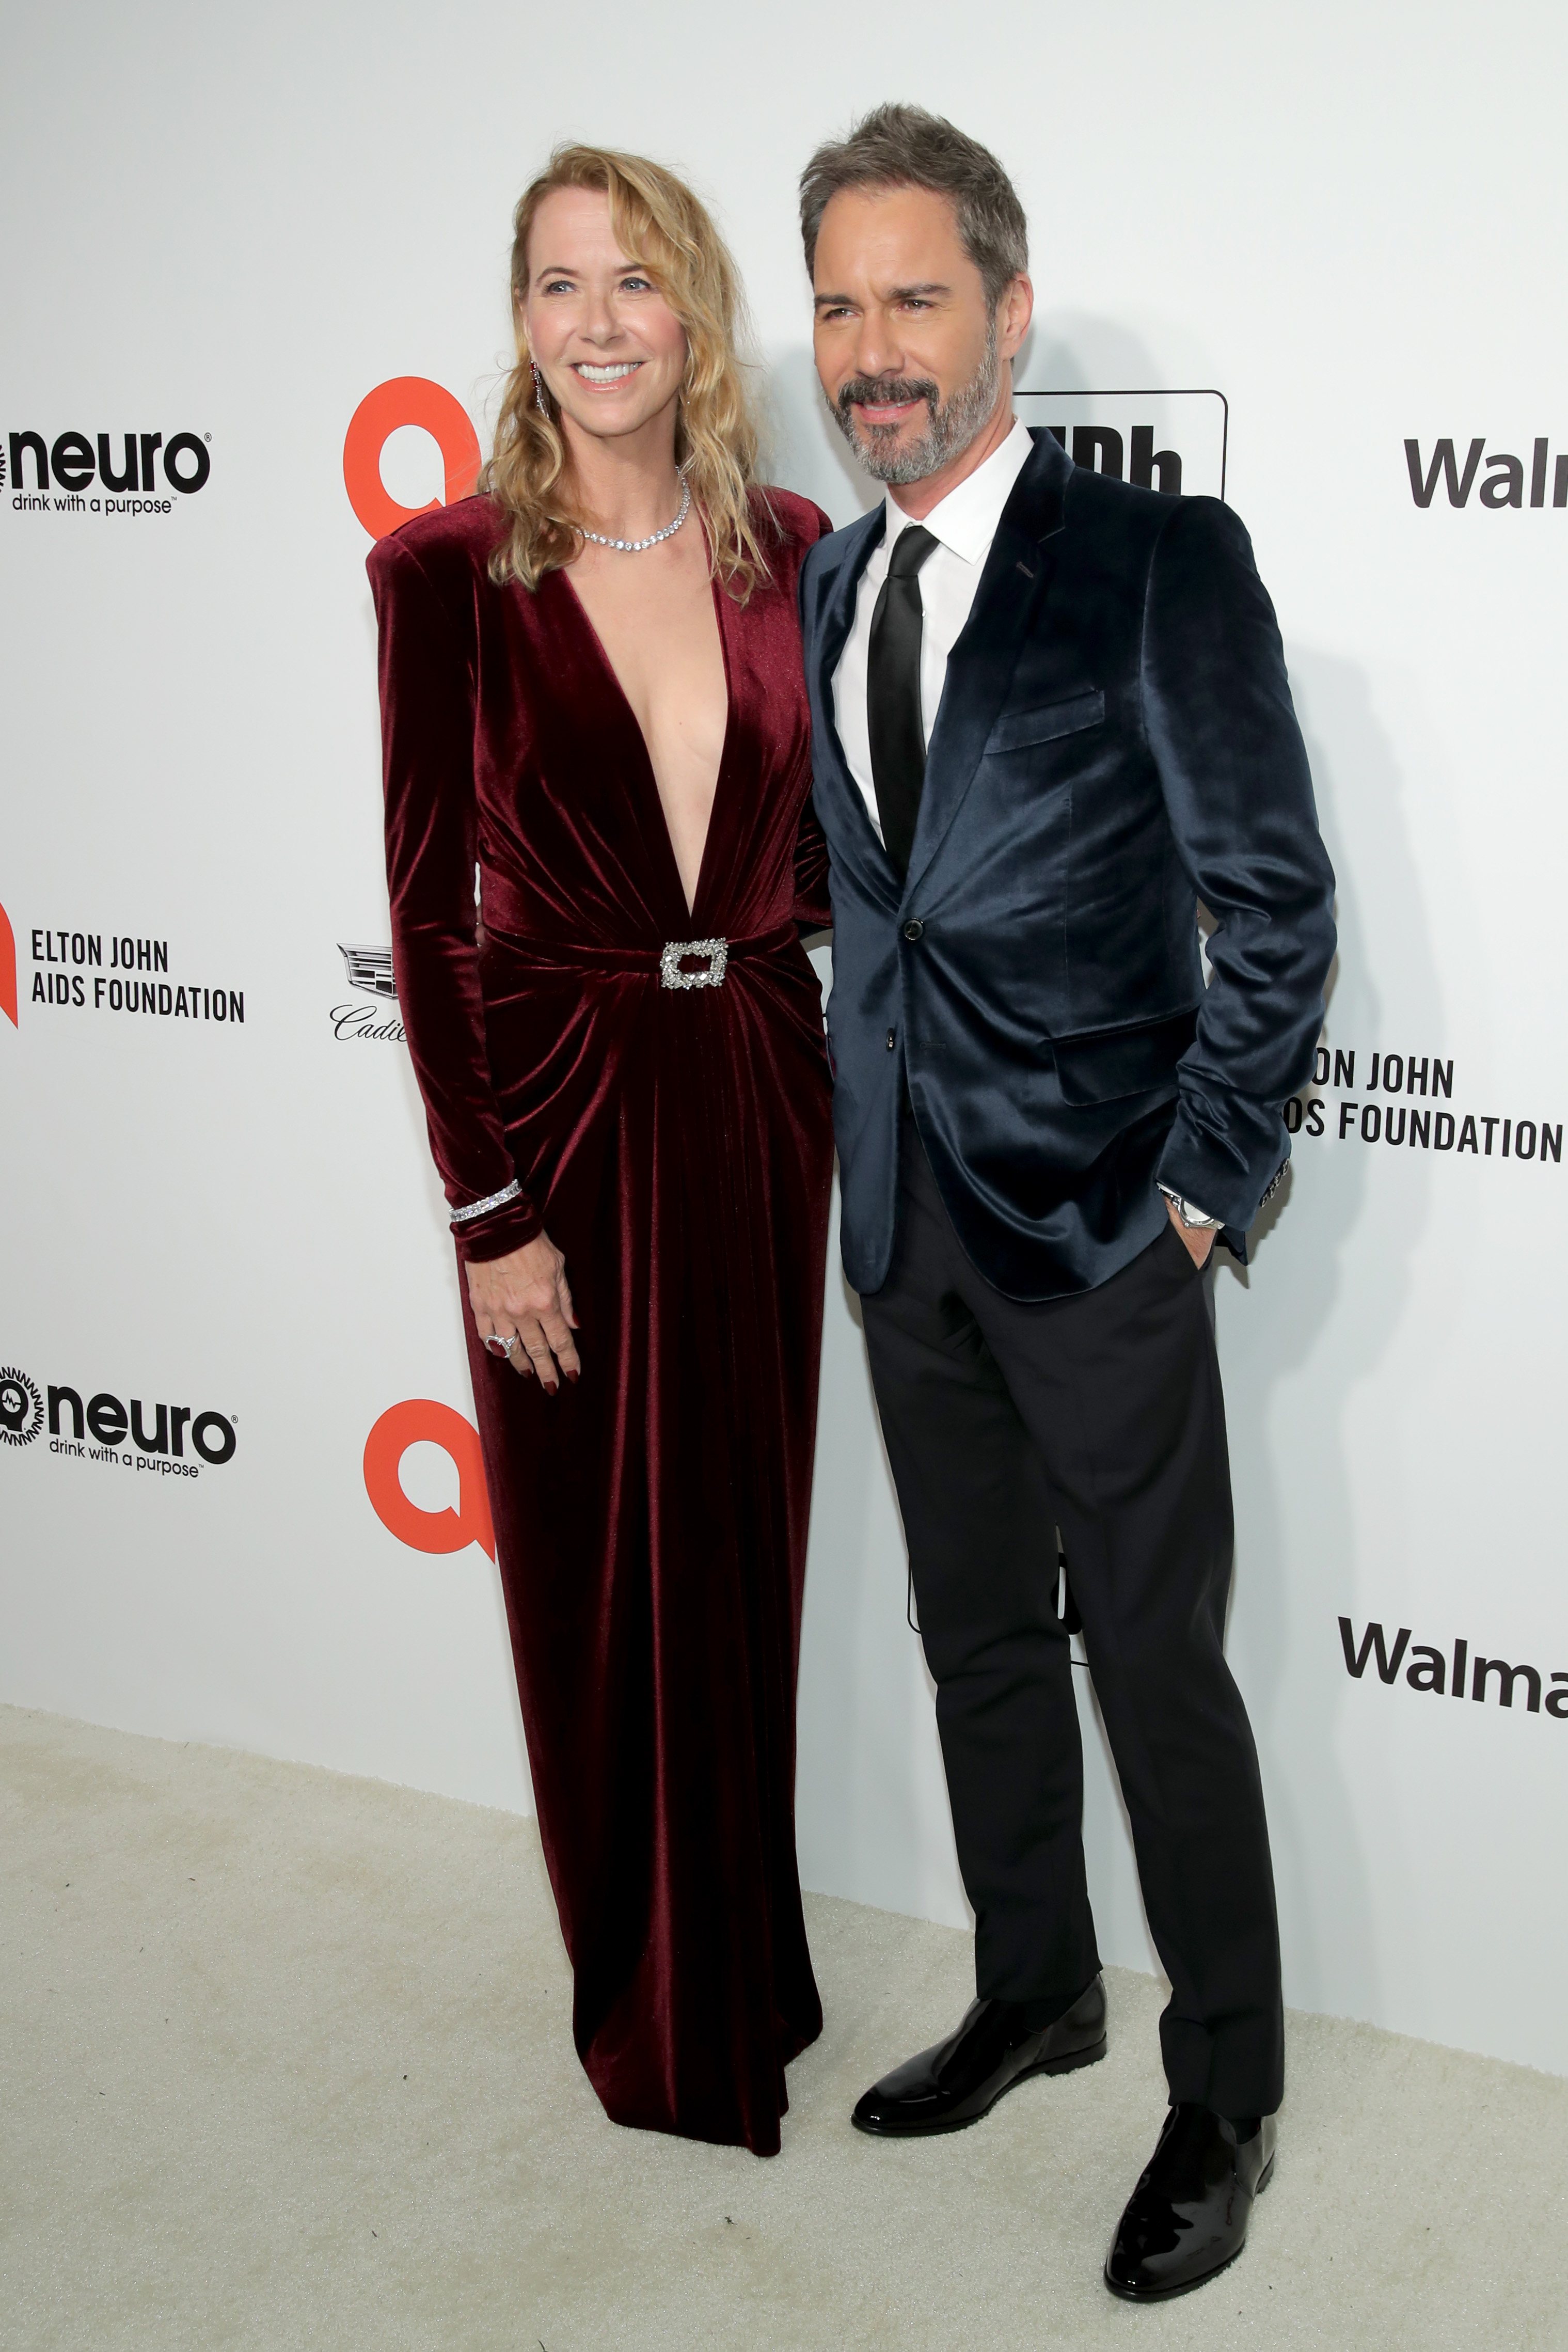 WEST HOLLYWOOD, CALIFORNIA - FEBRUARY 09: (L-R) Janet McCormack and Eric McCormack attend the 28th Annual Elton John AIDS Foundation Academy Awards Viewing Party sponsored by IMDb, Neuro Drinks and Walmart on February 09, 2020 in West Hollywood, California. (Photo by Jemal Countess/Getty Images)